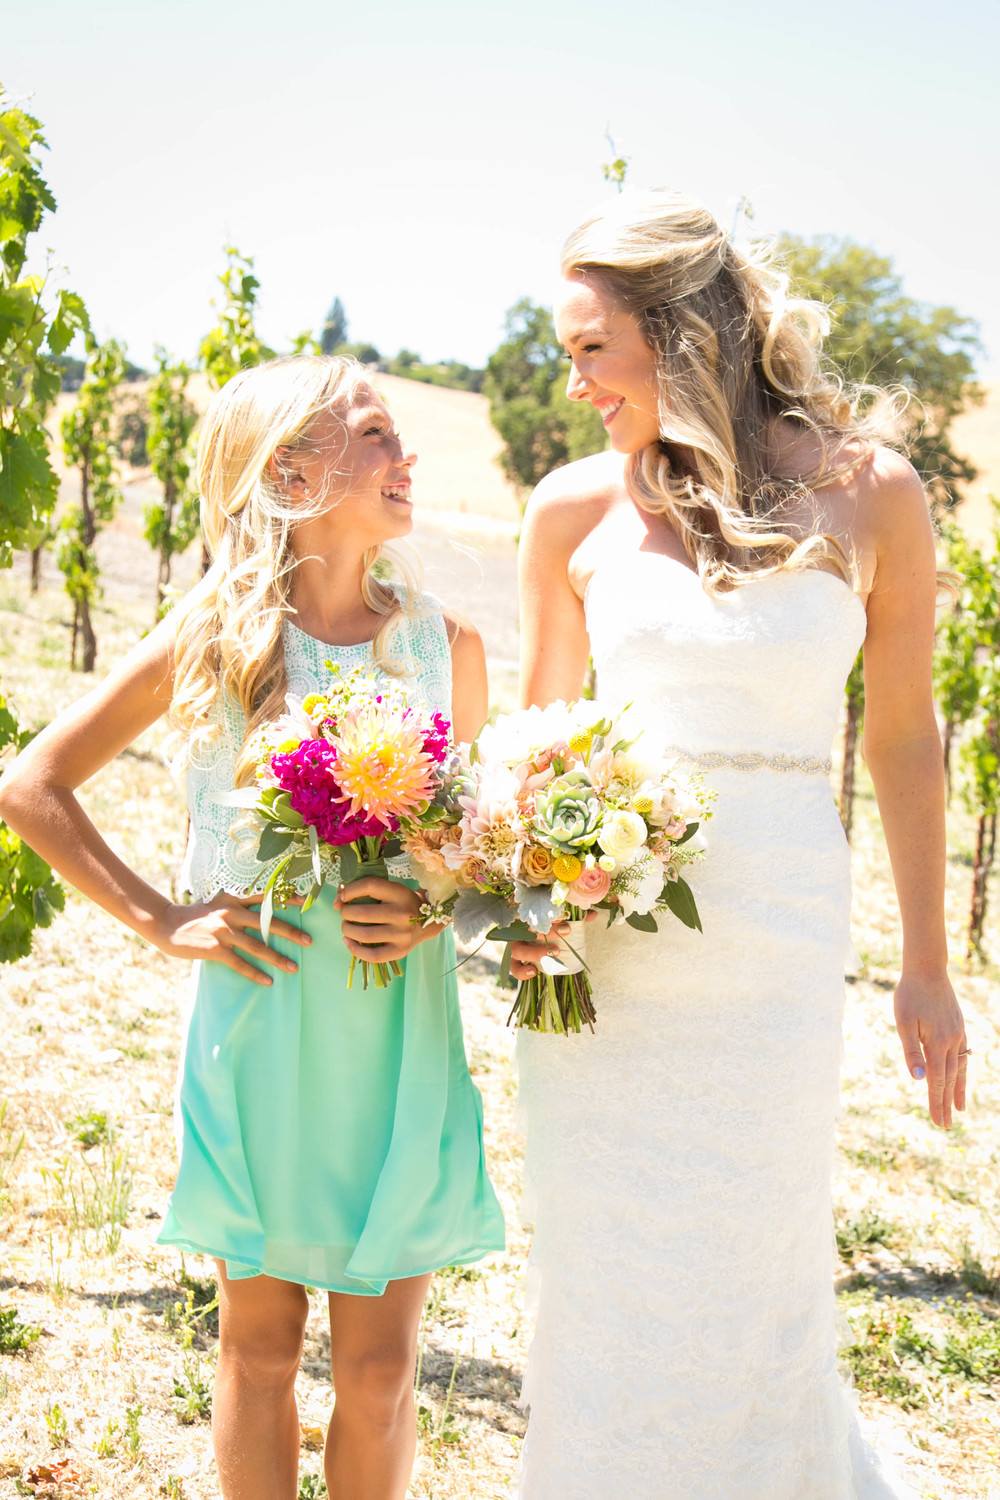 Paso Robles Vineyard Wedding101.jpg